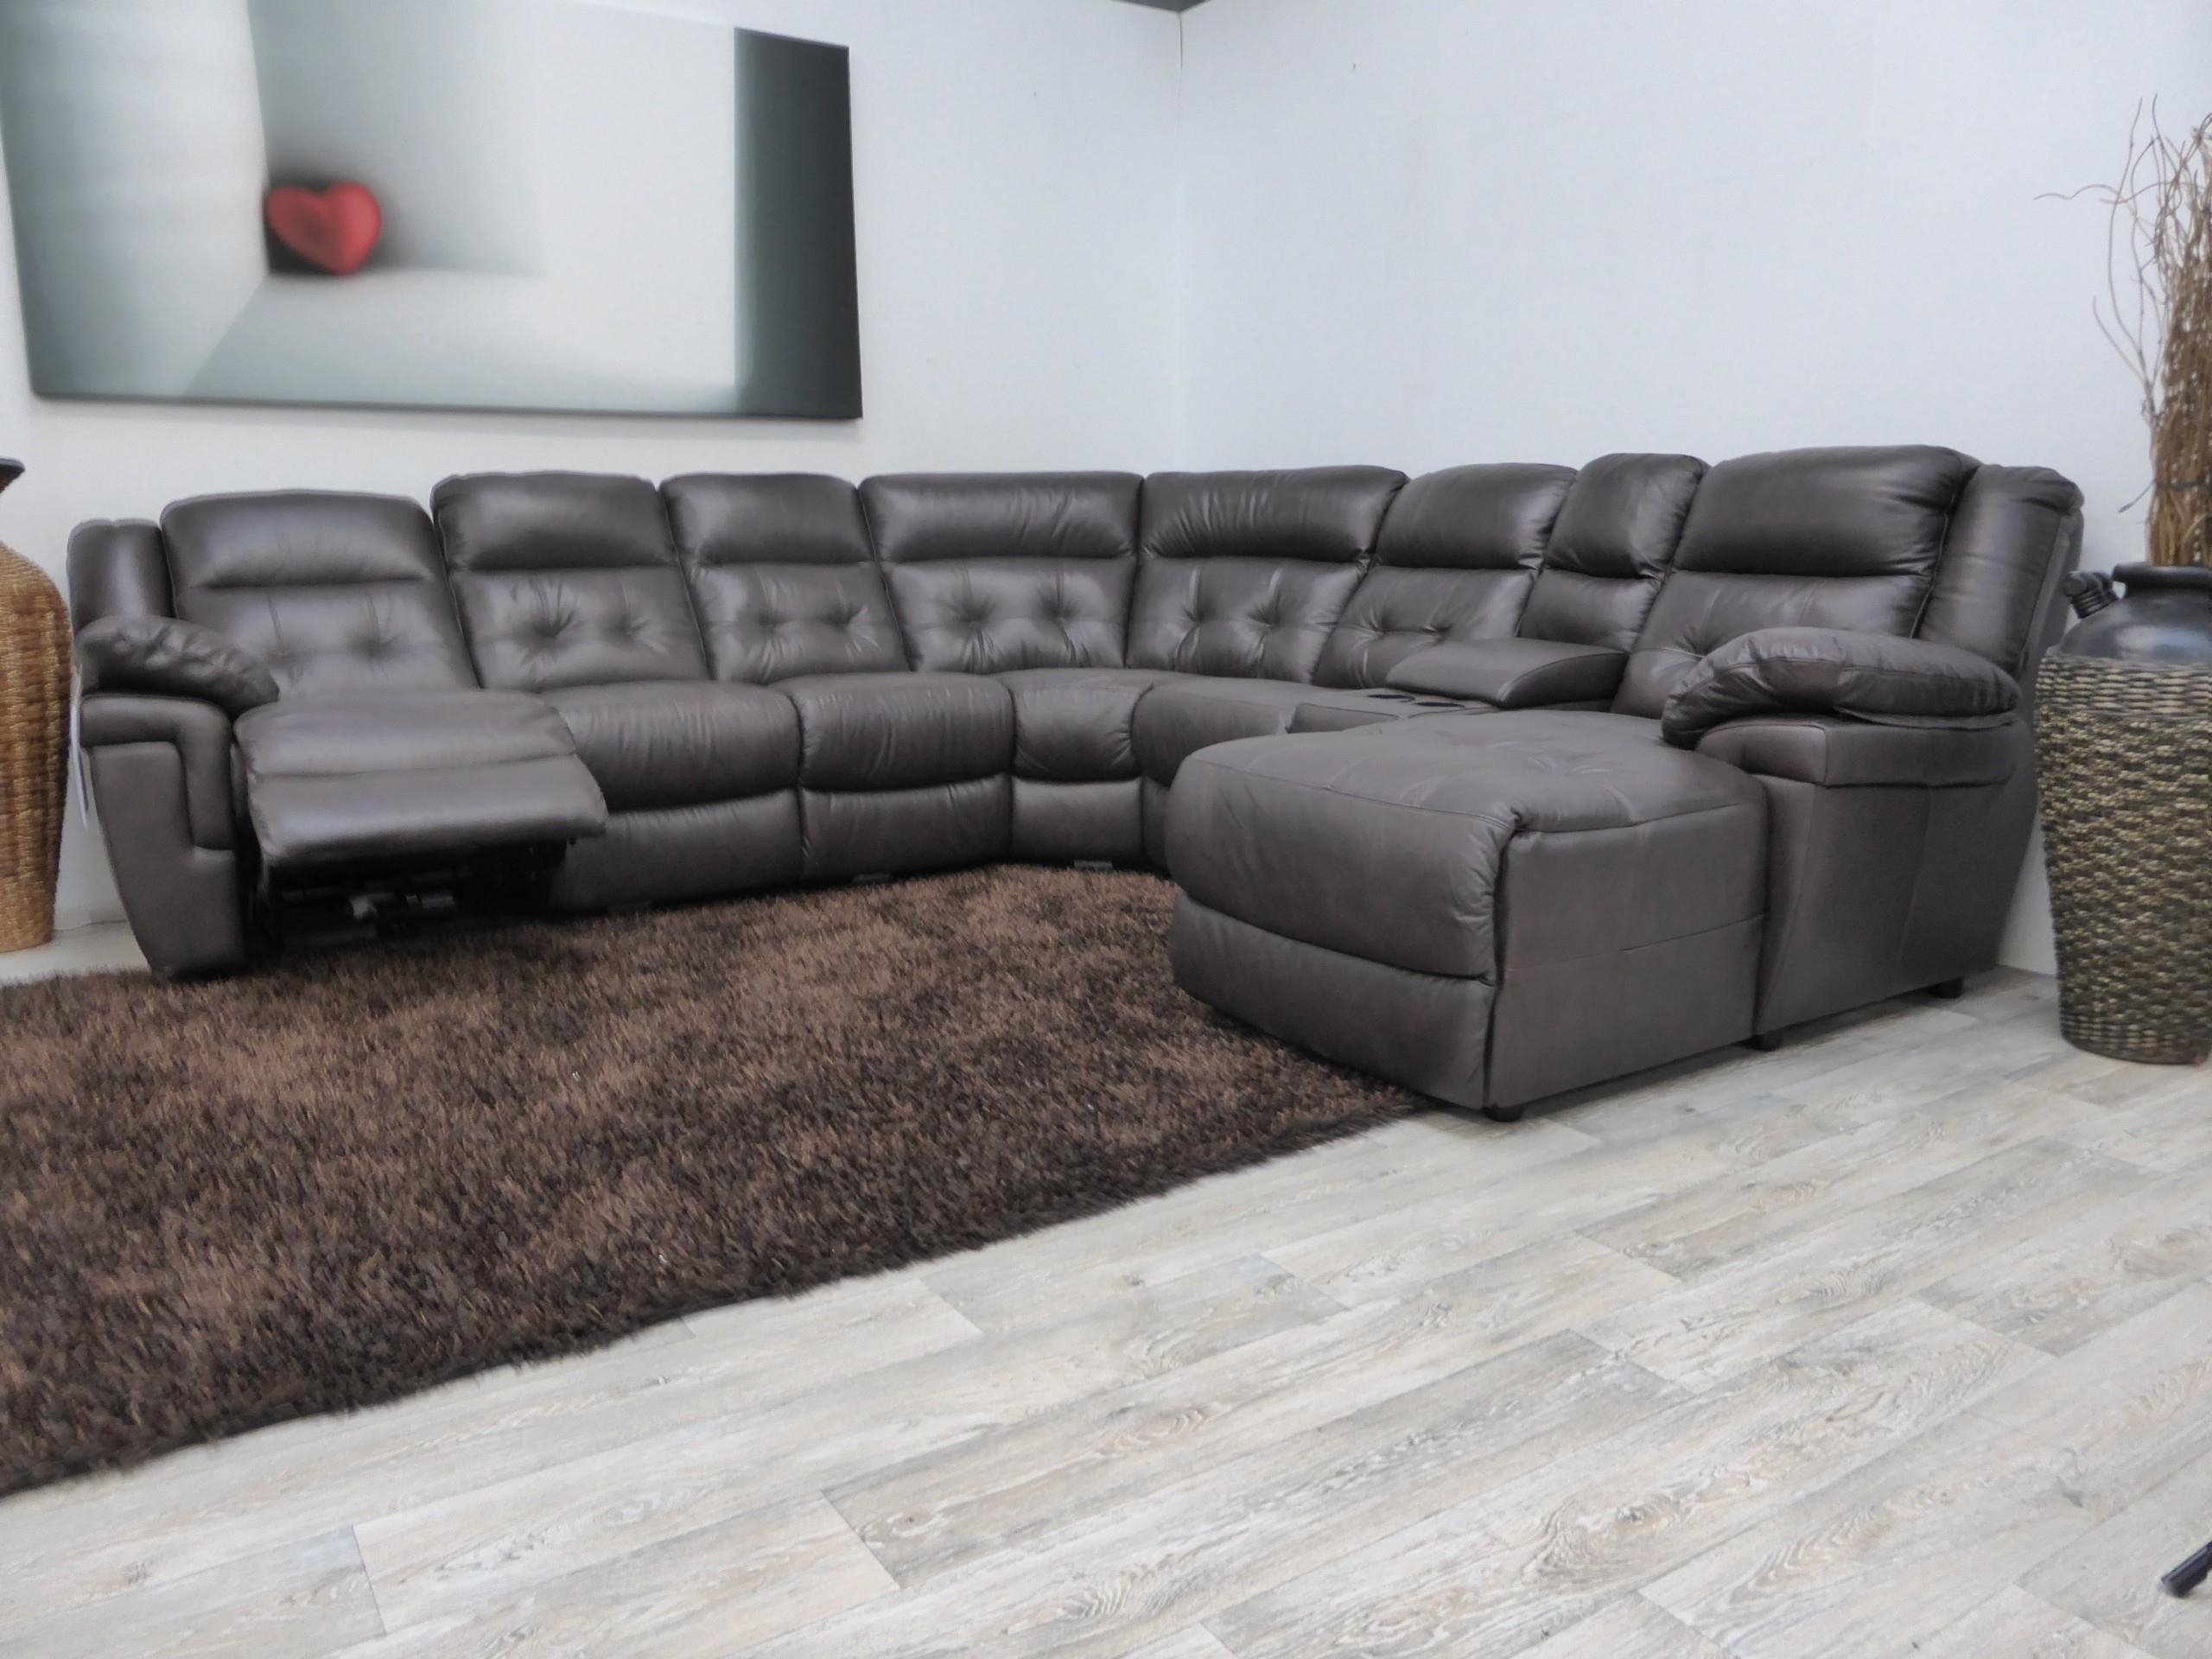 Furniture: Lazyboy Sectional | Fabric Sectional Sofa | Recliner In Lazyboy Sectional Sofas (Image 4 of 20)